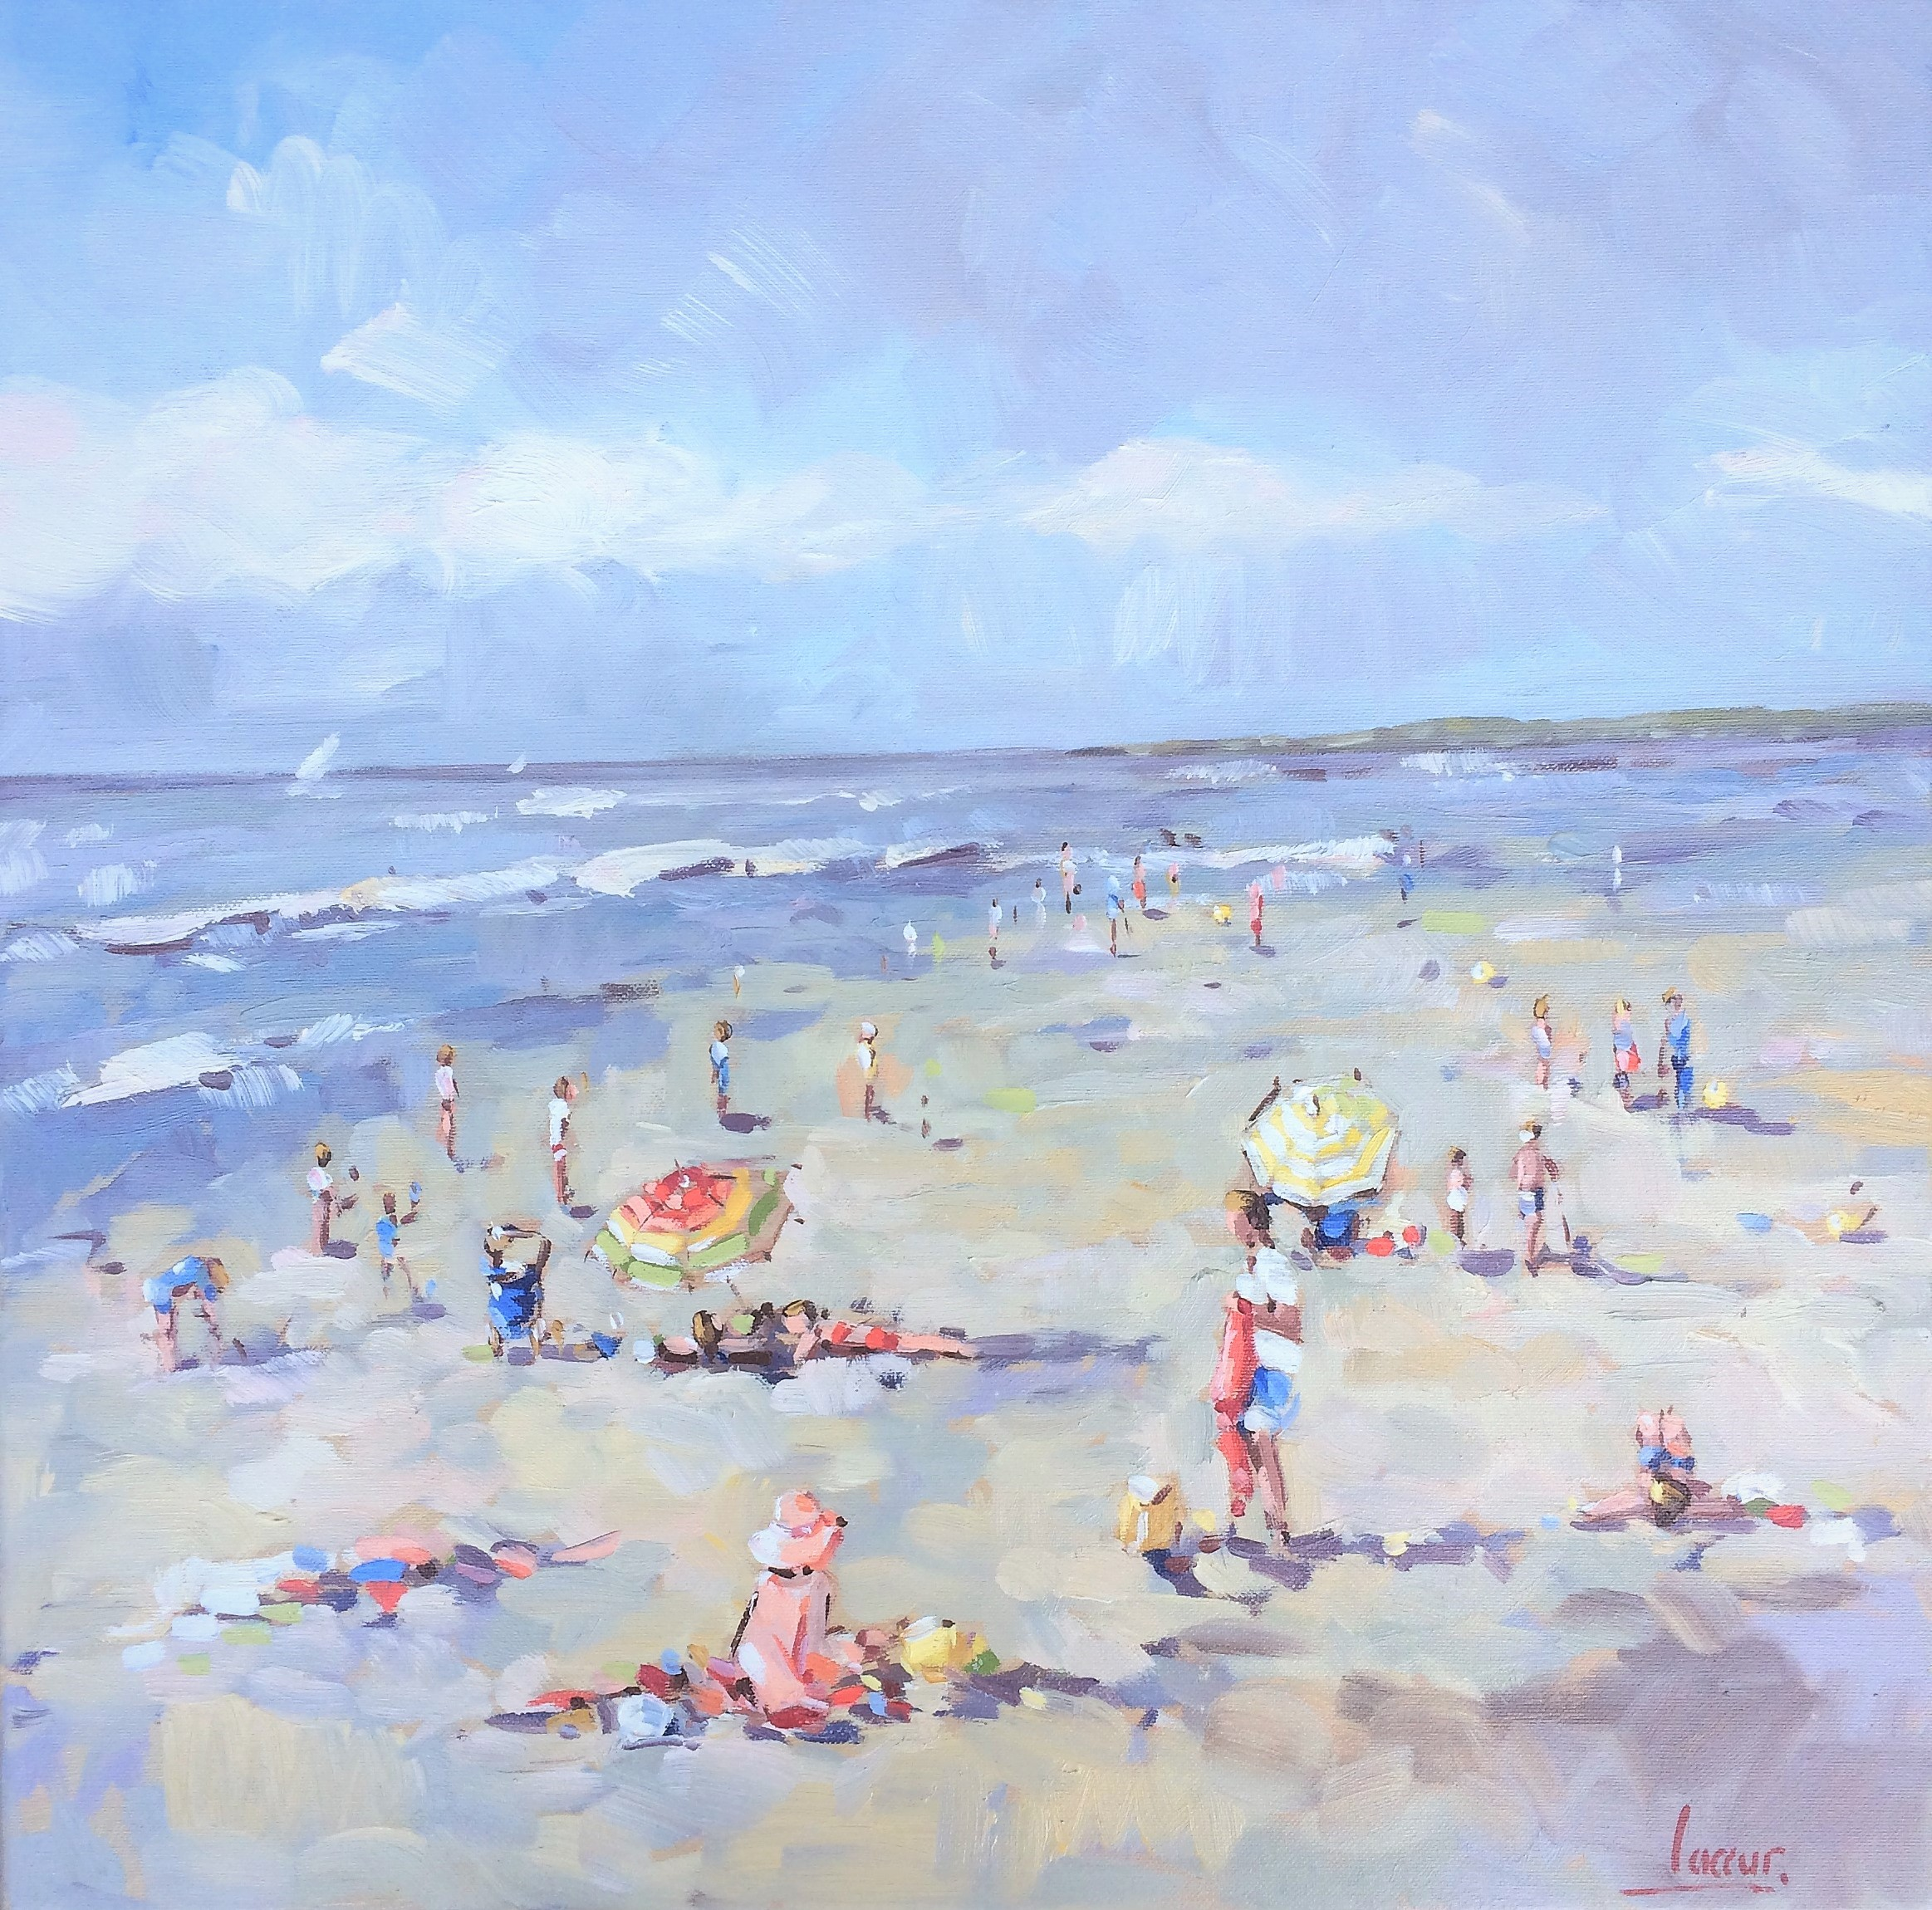 A Sunny Day at The Beach (2)